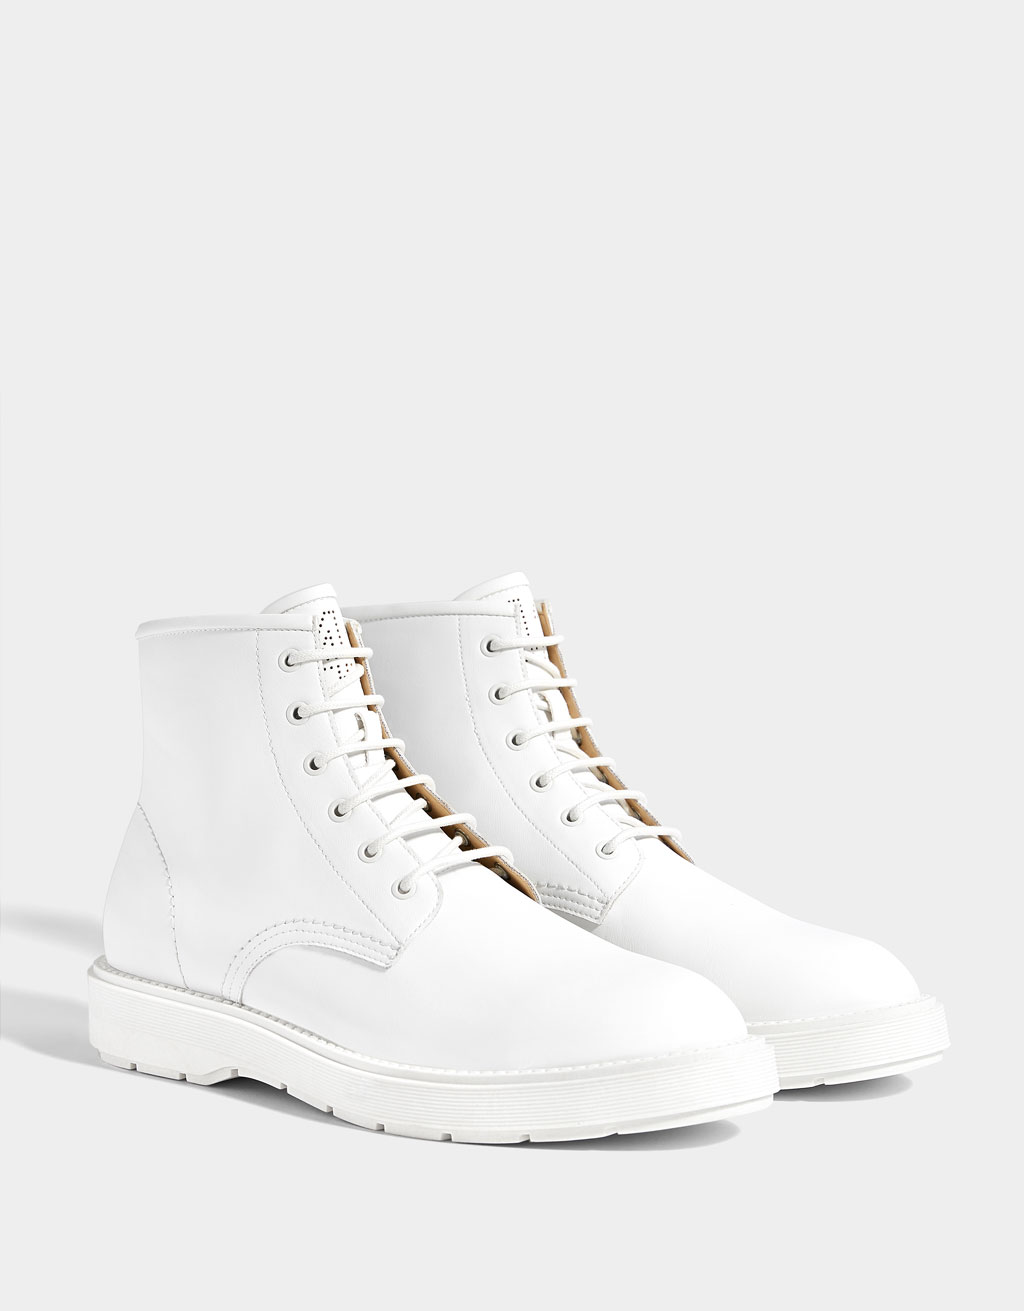 Men's monochrome boots